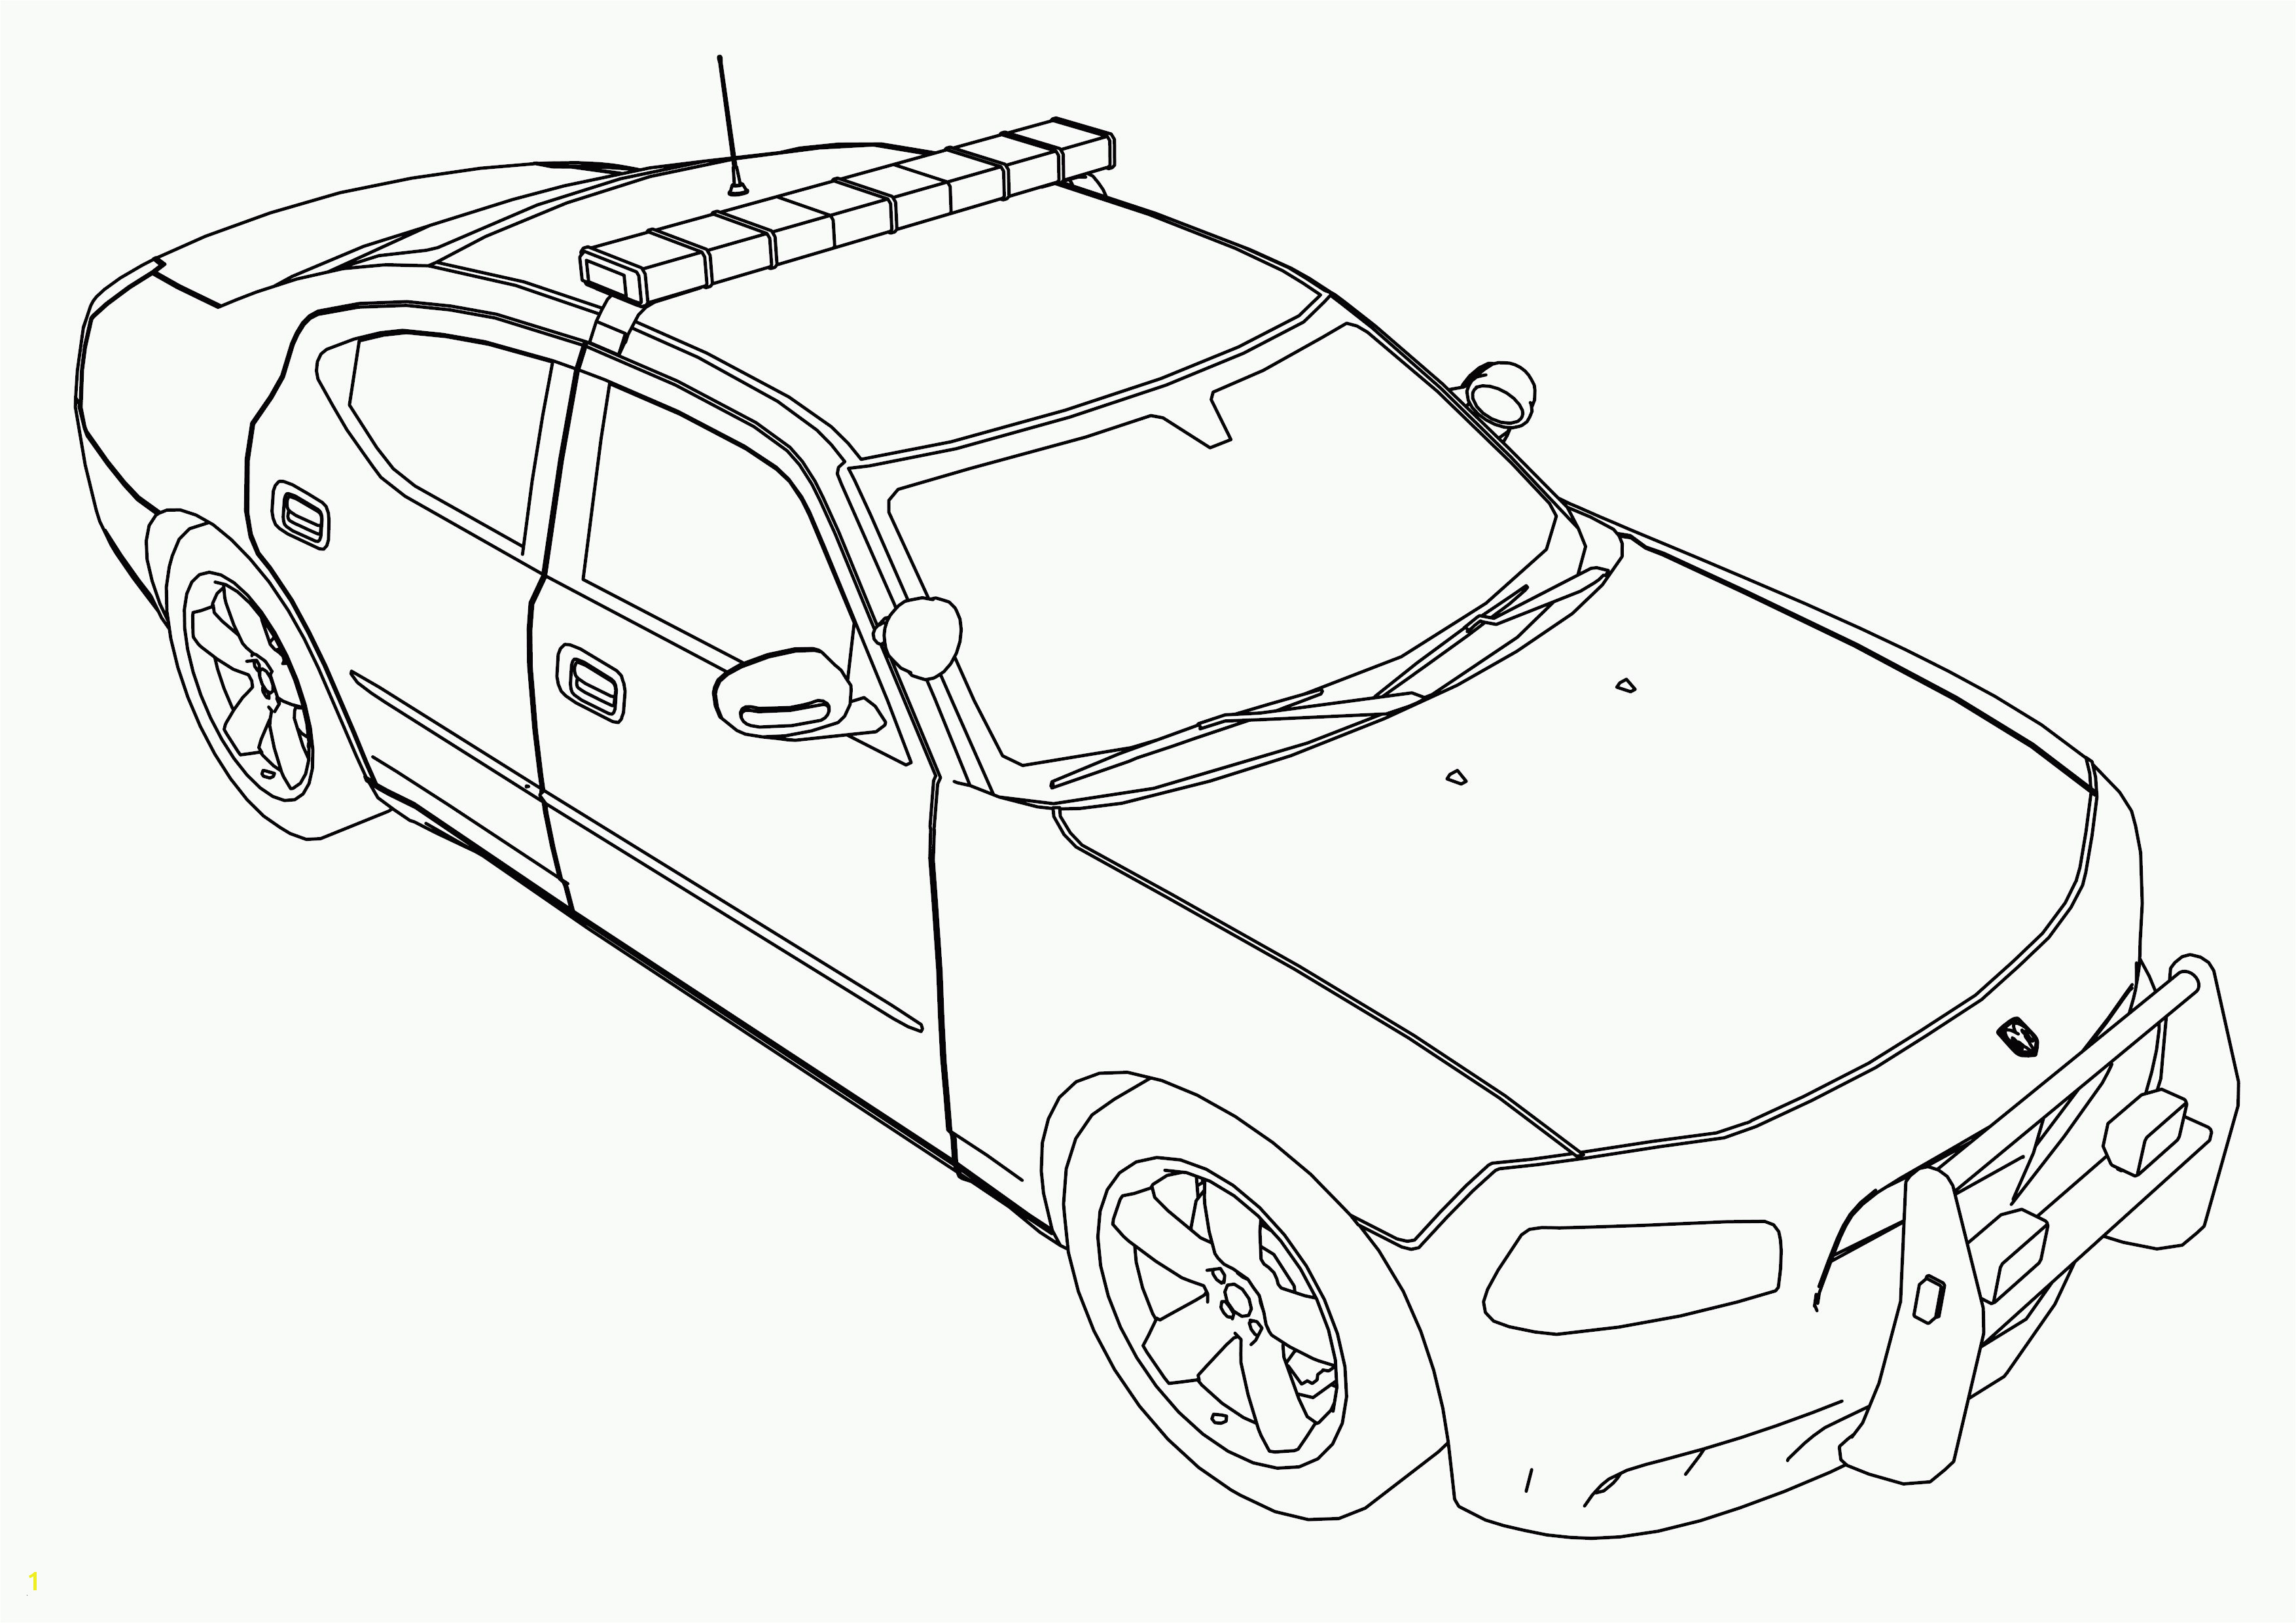 Swat Team Coloring Pages Police Car Coloring Pages New Police Car Coloring Page Elegant Free